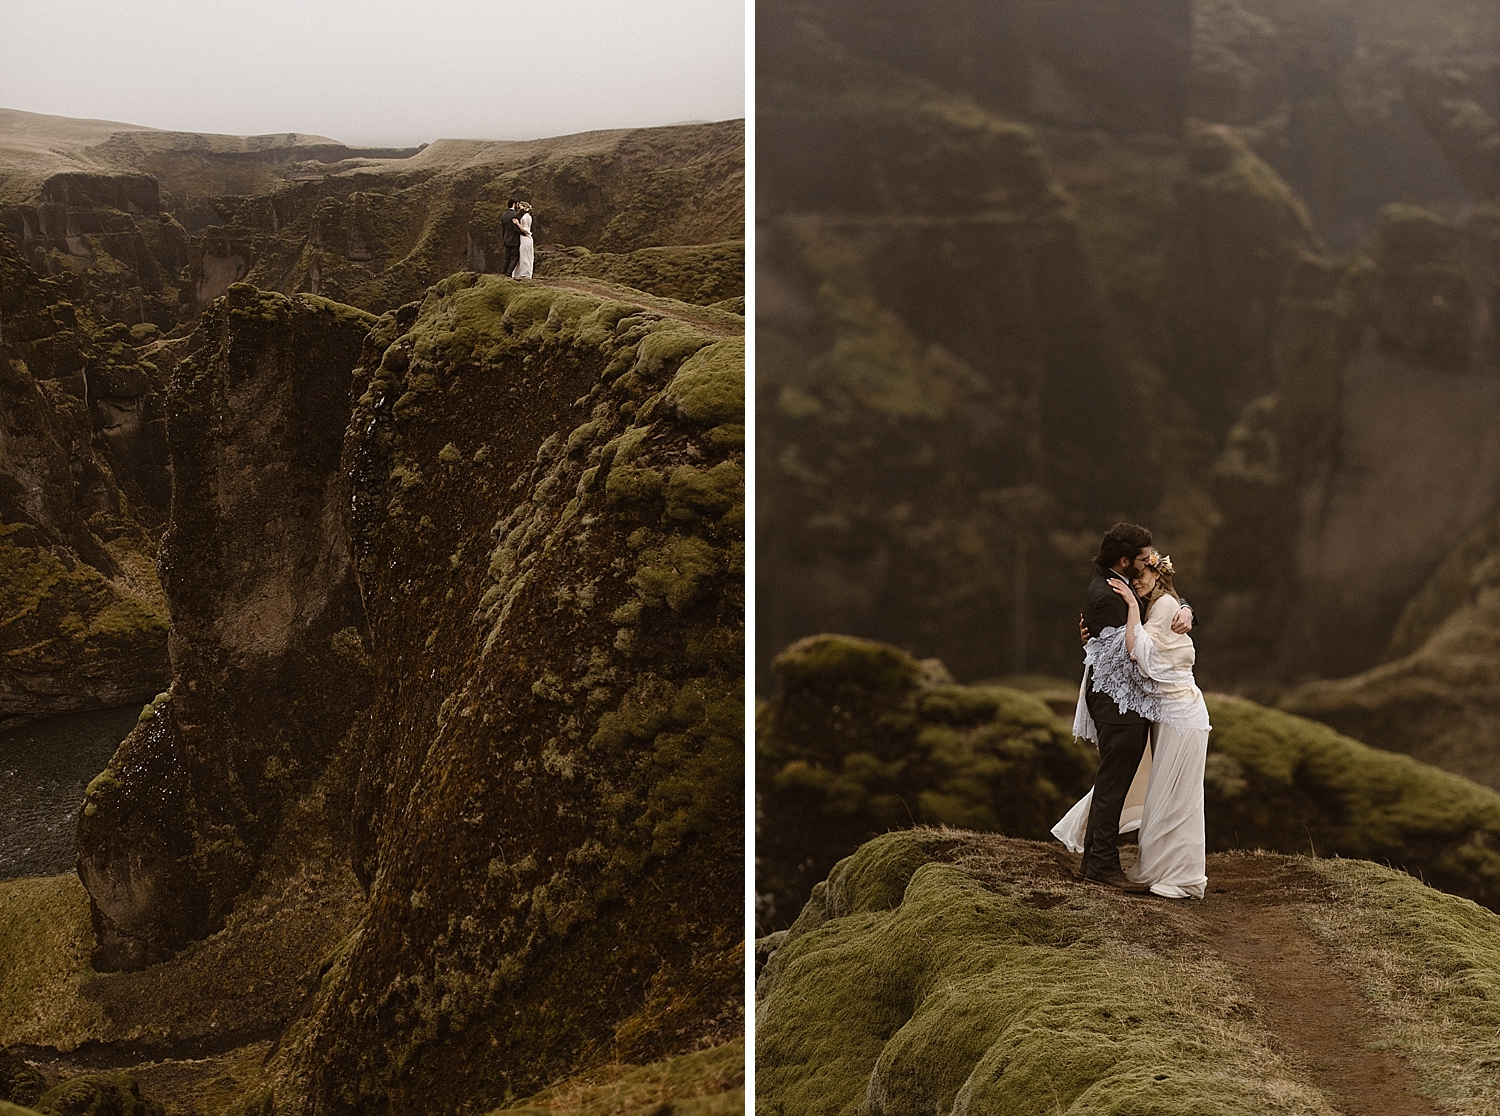 Caught by the wind, Julie and Tim started back toward the cliffside at Fjadrargljufur Canyon so they could share their intimate wedding vows. Their windy Iceland elopement captured by traveling wedding photographer Maddie Mae.